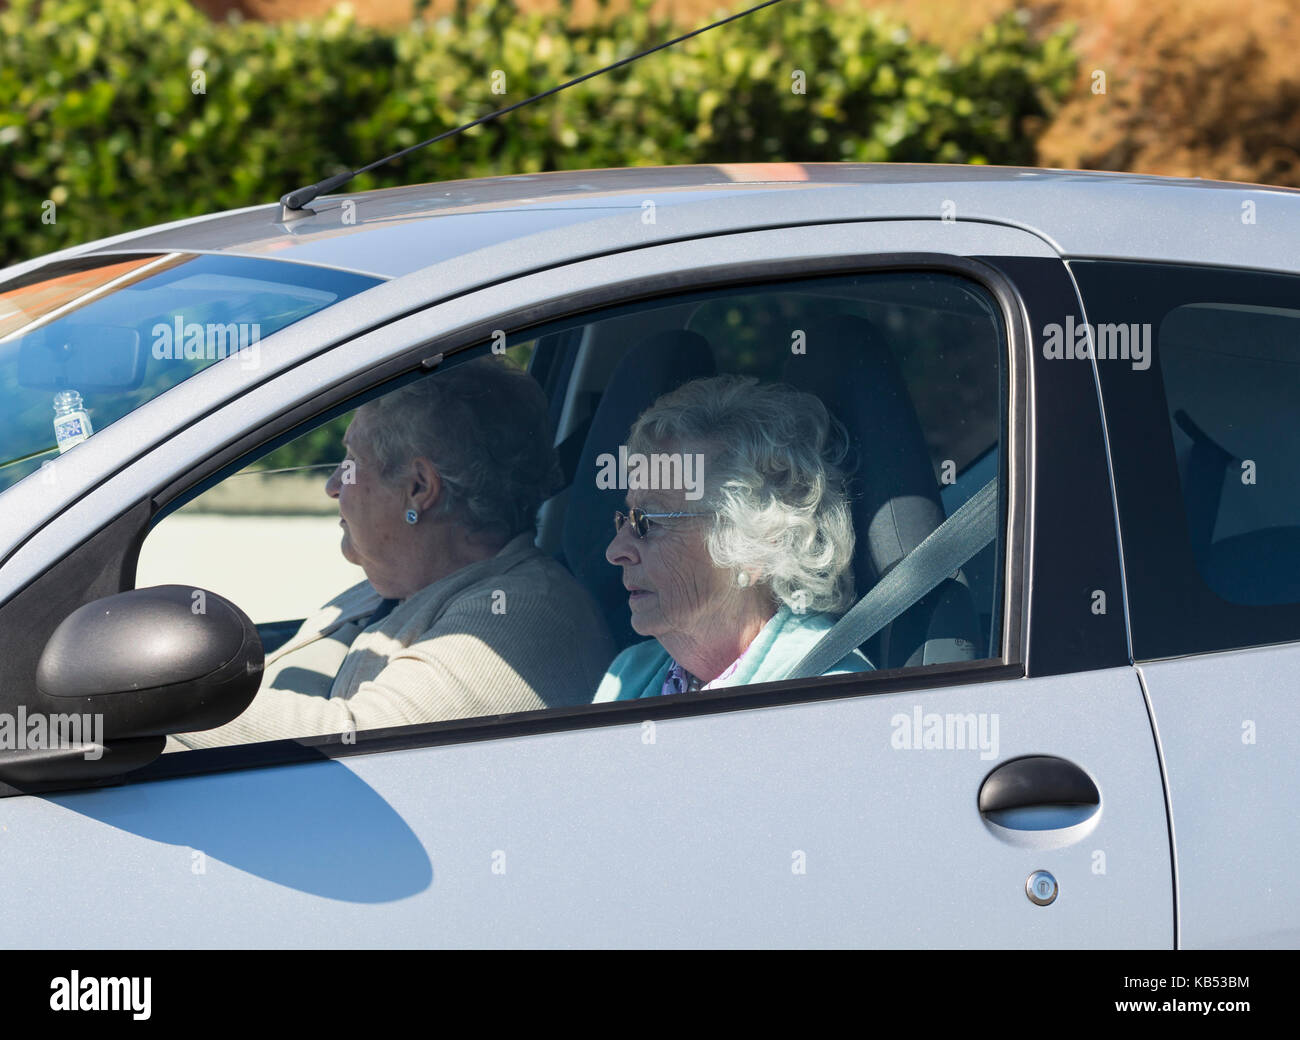 Pair of elderly women in a car. - Stock Image